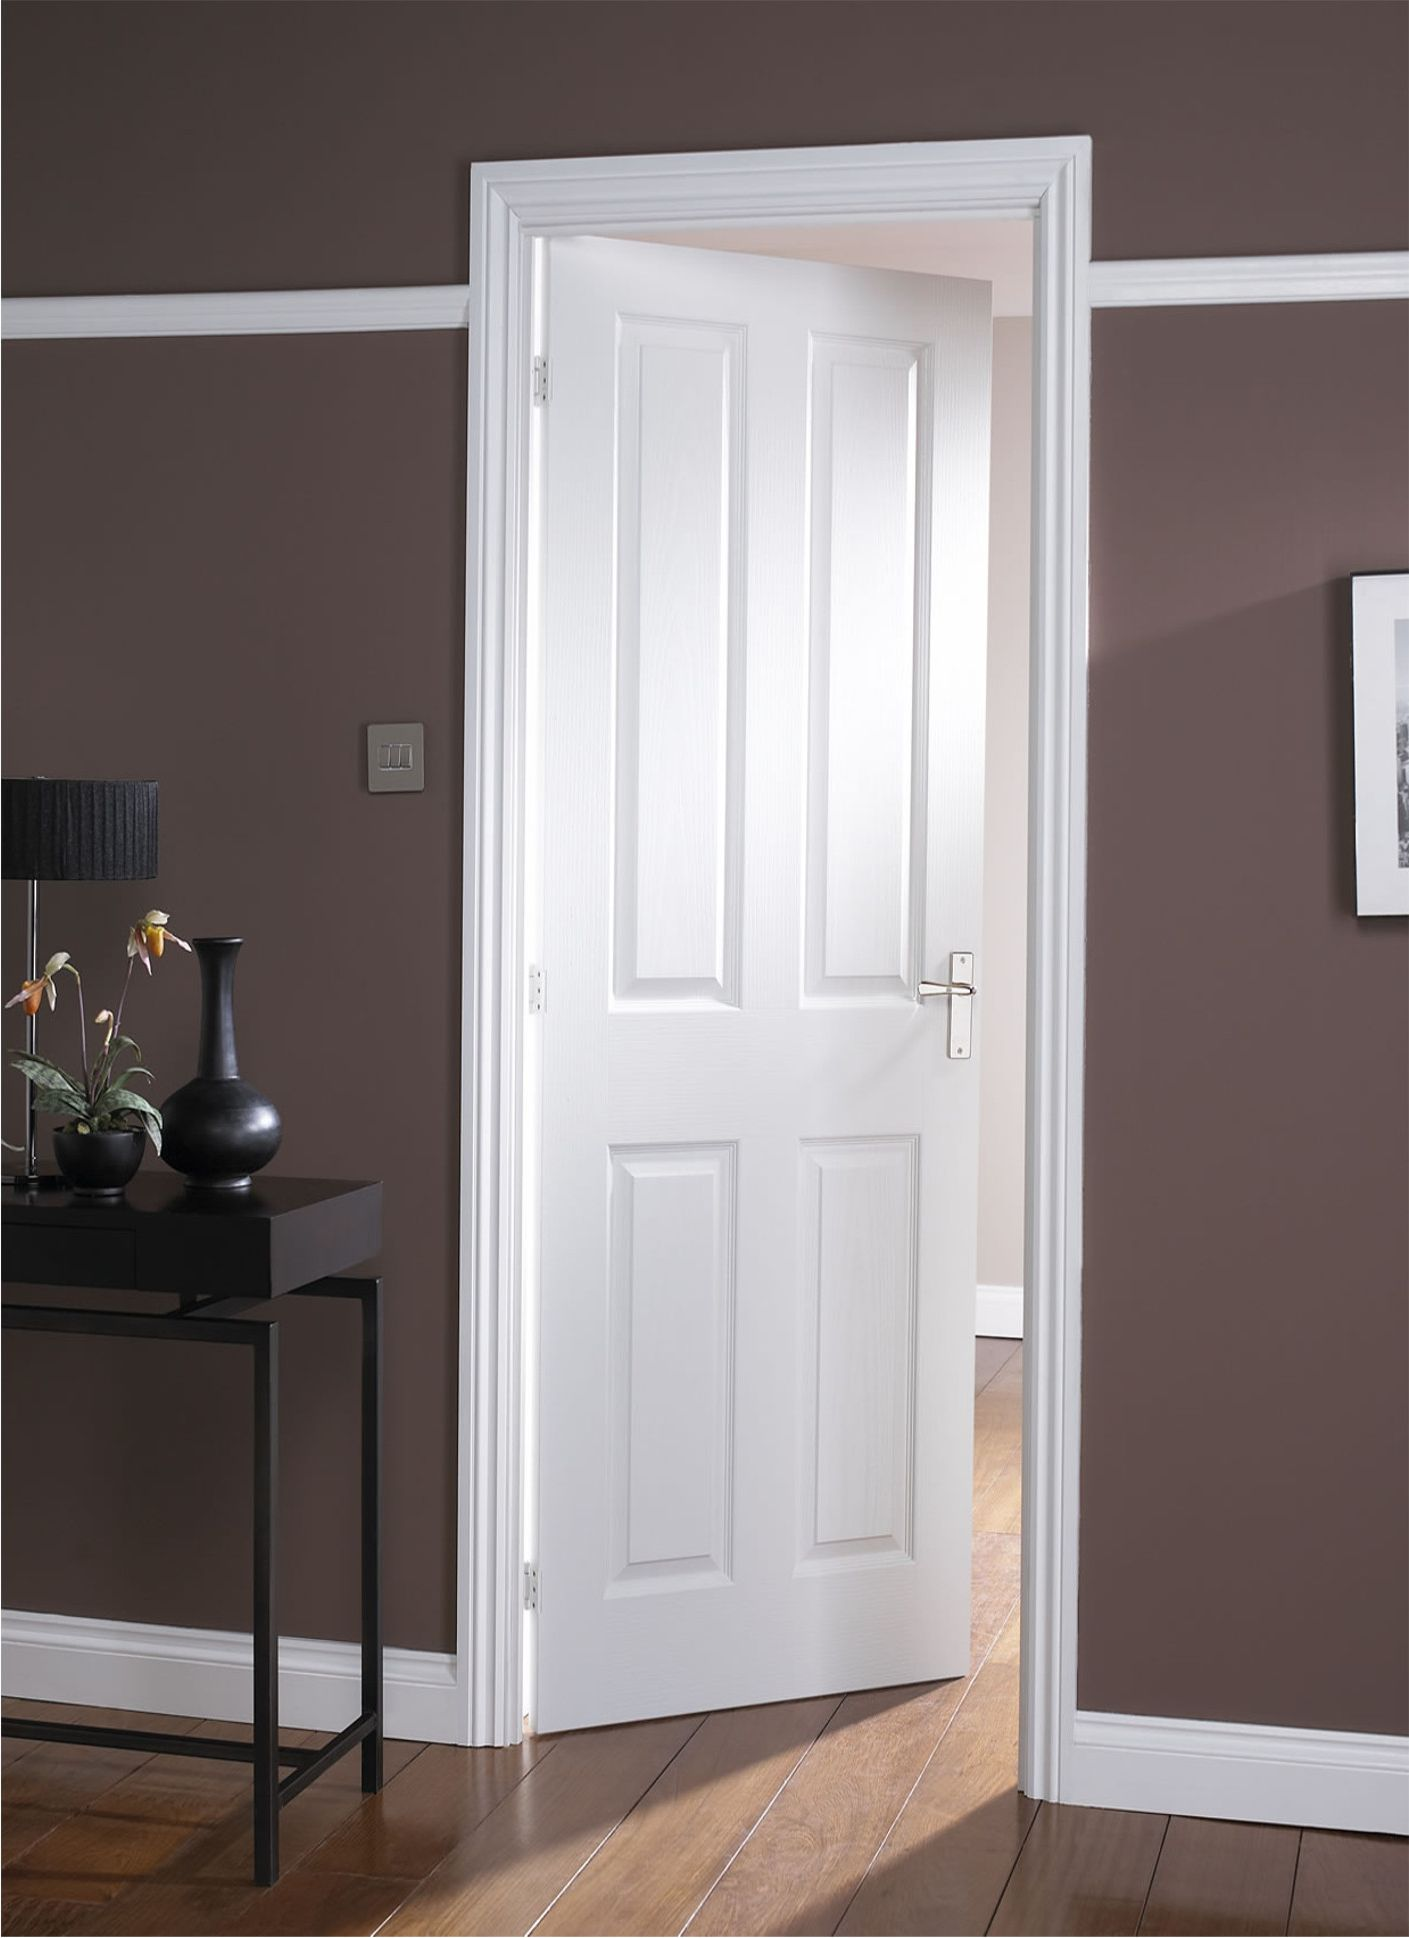 Masonite door new logan 2 panel interior door sc 1 st for Www masonite com interior doors